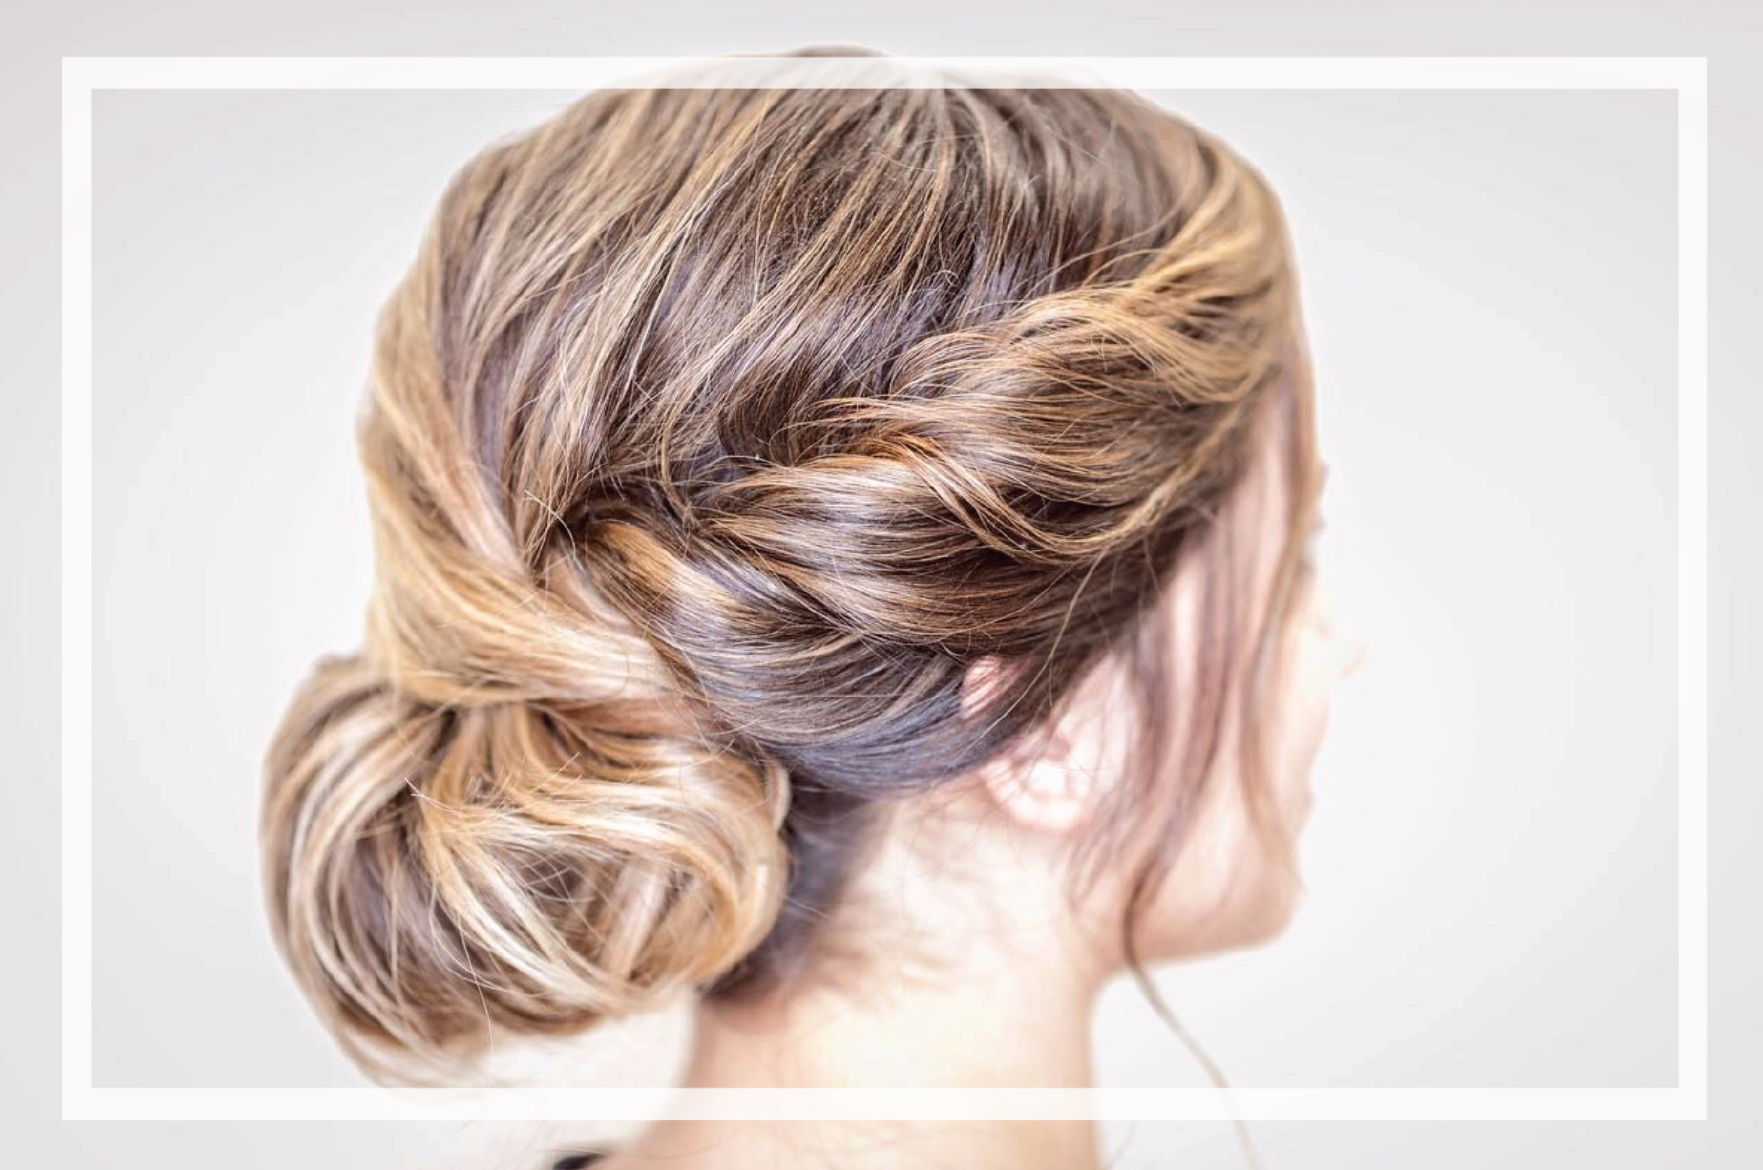 Services Menu - Bridal Up-do $70 (Includes free trial in salon)Bridesmaids $55Mother of the Bride/Groom $55Flower Girl $40Airbrush Make-up $55 (Includes free bridal trial)Lash Application $5